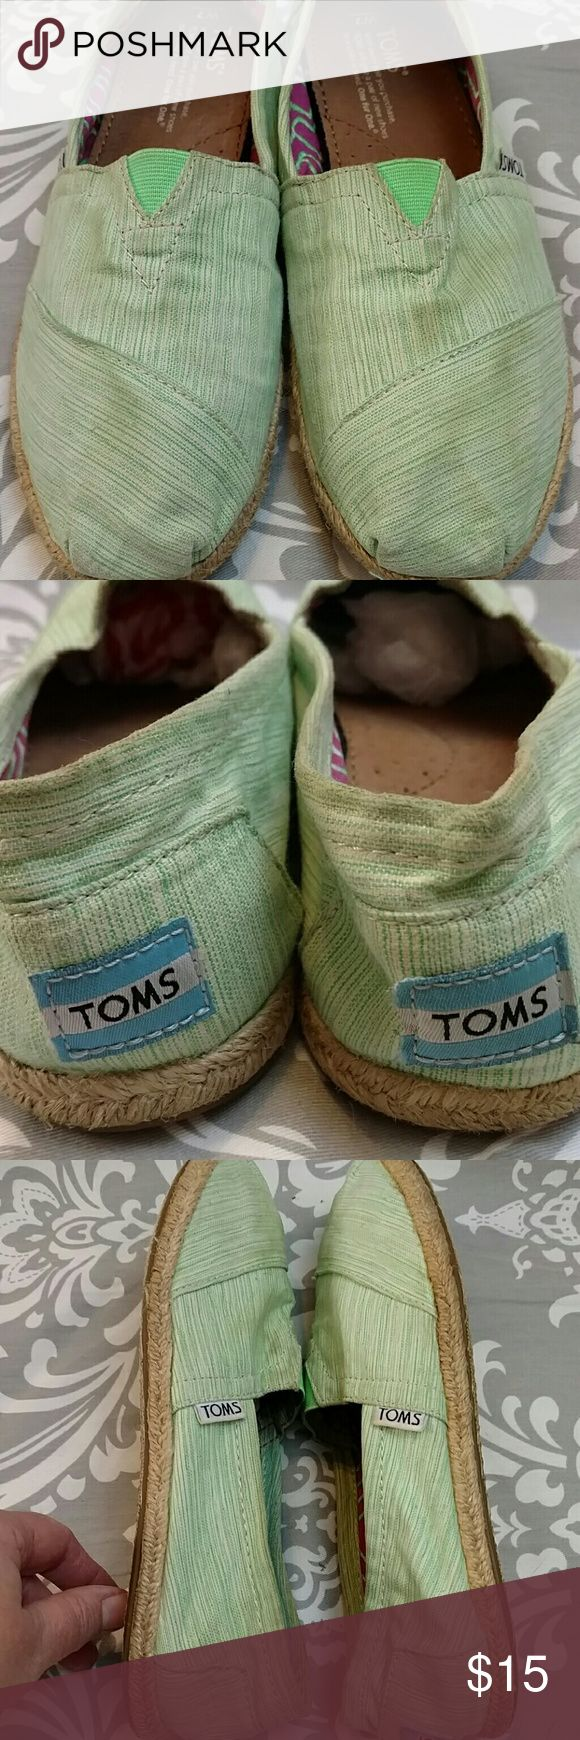 Toms Espadrille Canvas Slip On, Green Stripe Tom's canvas slip on Sole lined with jute Pre-loved with no major flaws but do show signs of wear. TOMS Shoes Espadrilles